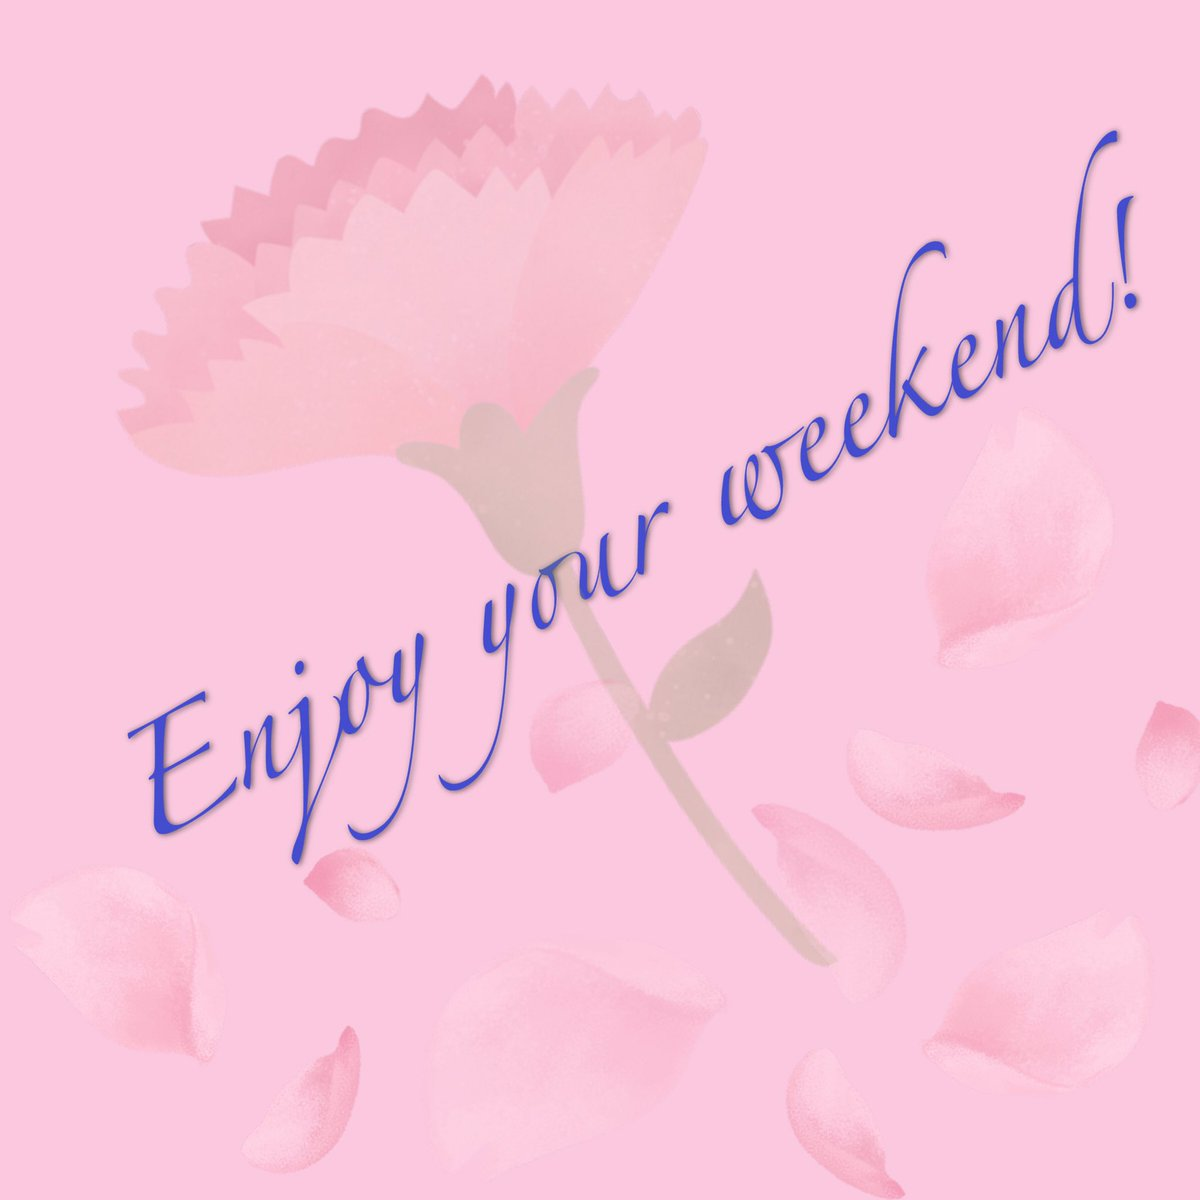 Enjoy your weekend! #NationalDonutDay #weekend #Enjoy #pride #flower #calendar #agenda #Agenda2020 #goals #COVID #COVID19 #family #TogetherWeCan #YouCanDoIt #StayHome #Reading #Weeekly #weekend #summer #June6th #relaxing #smile #LoveWithoutLimits #love https://t.co/9VEa7vRWqS